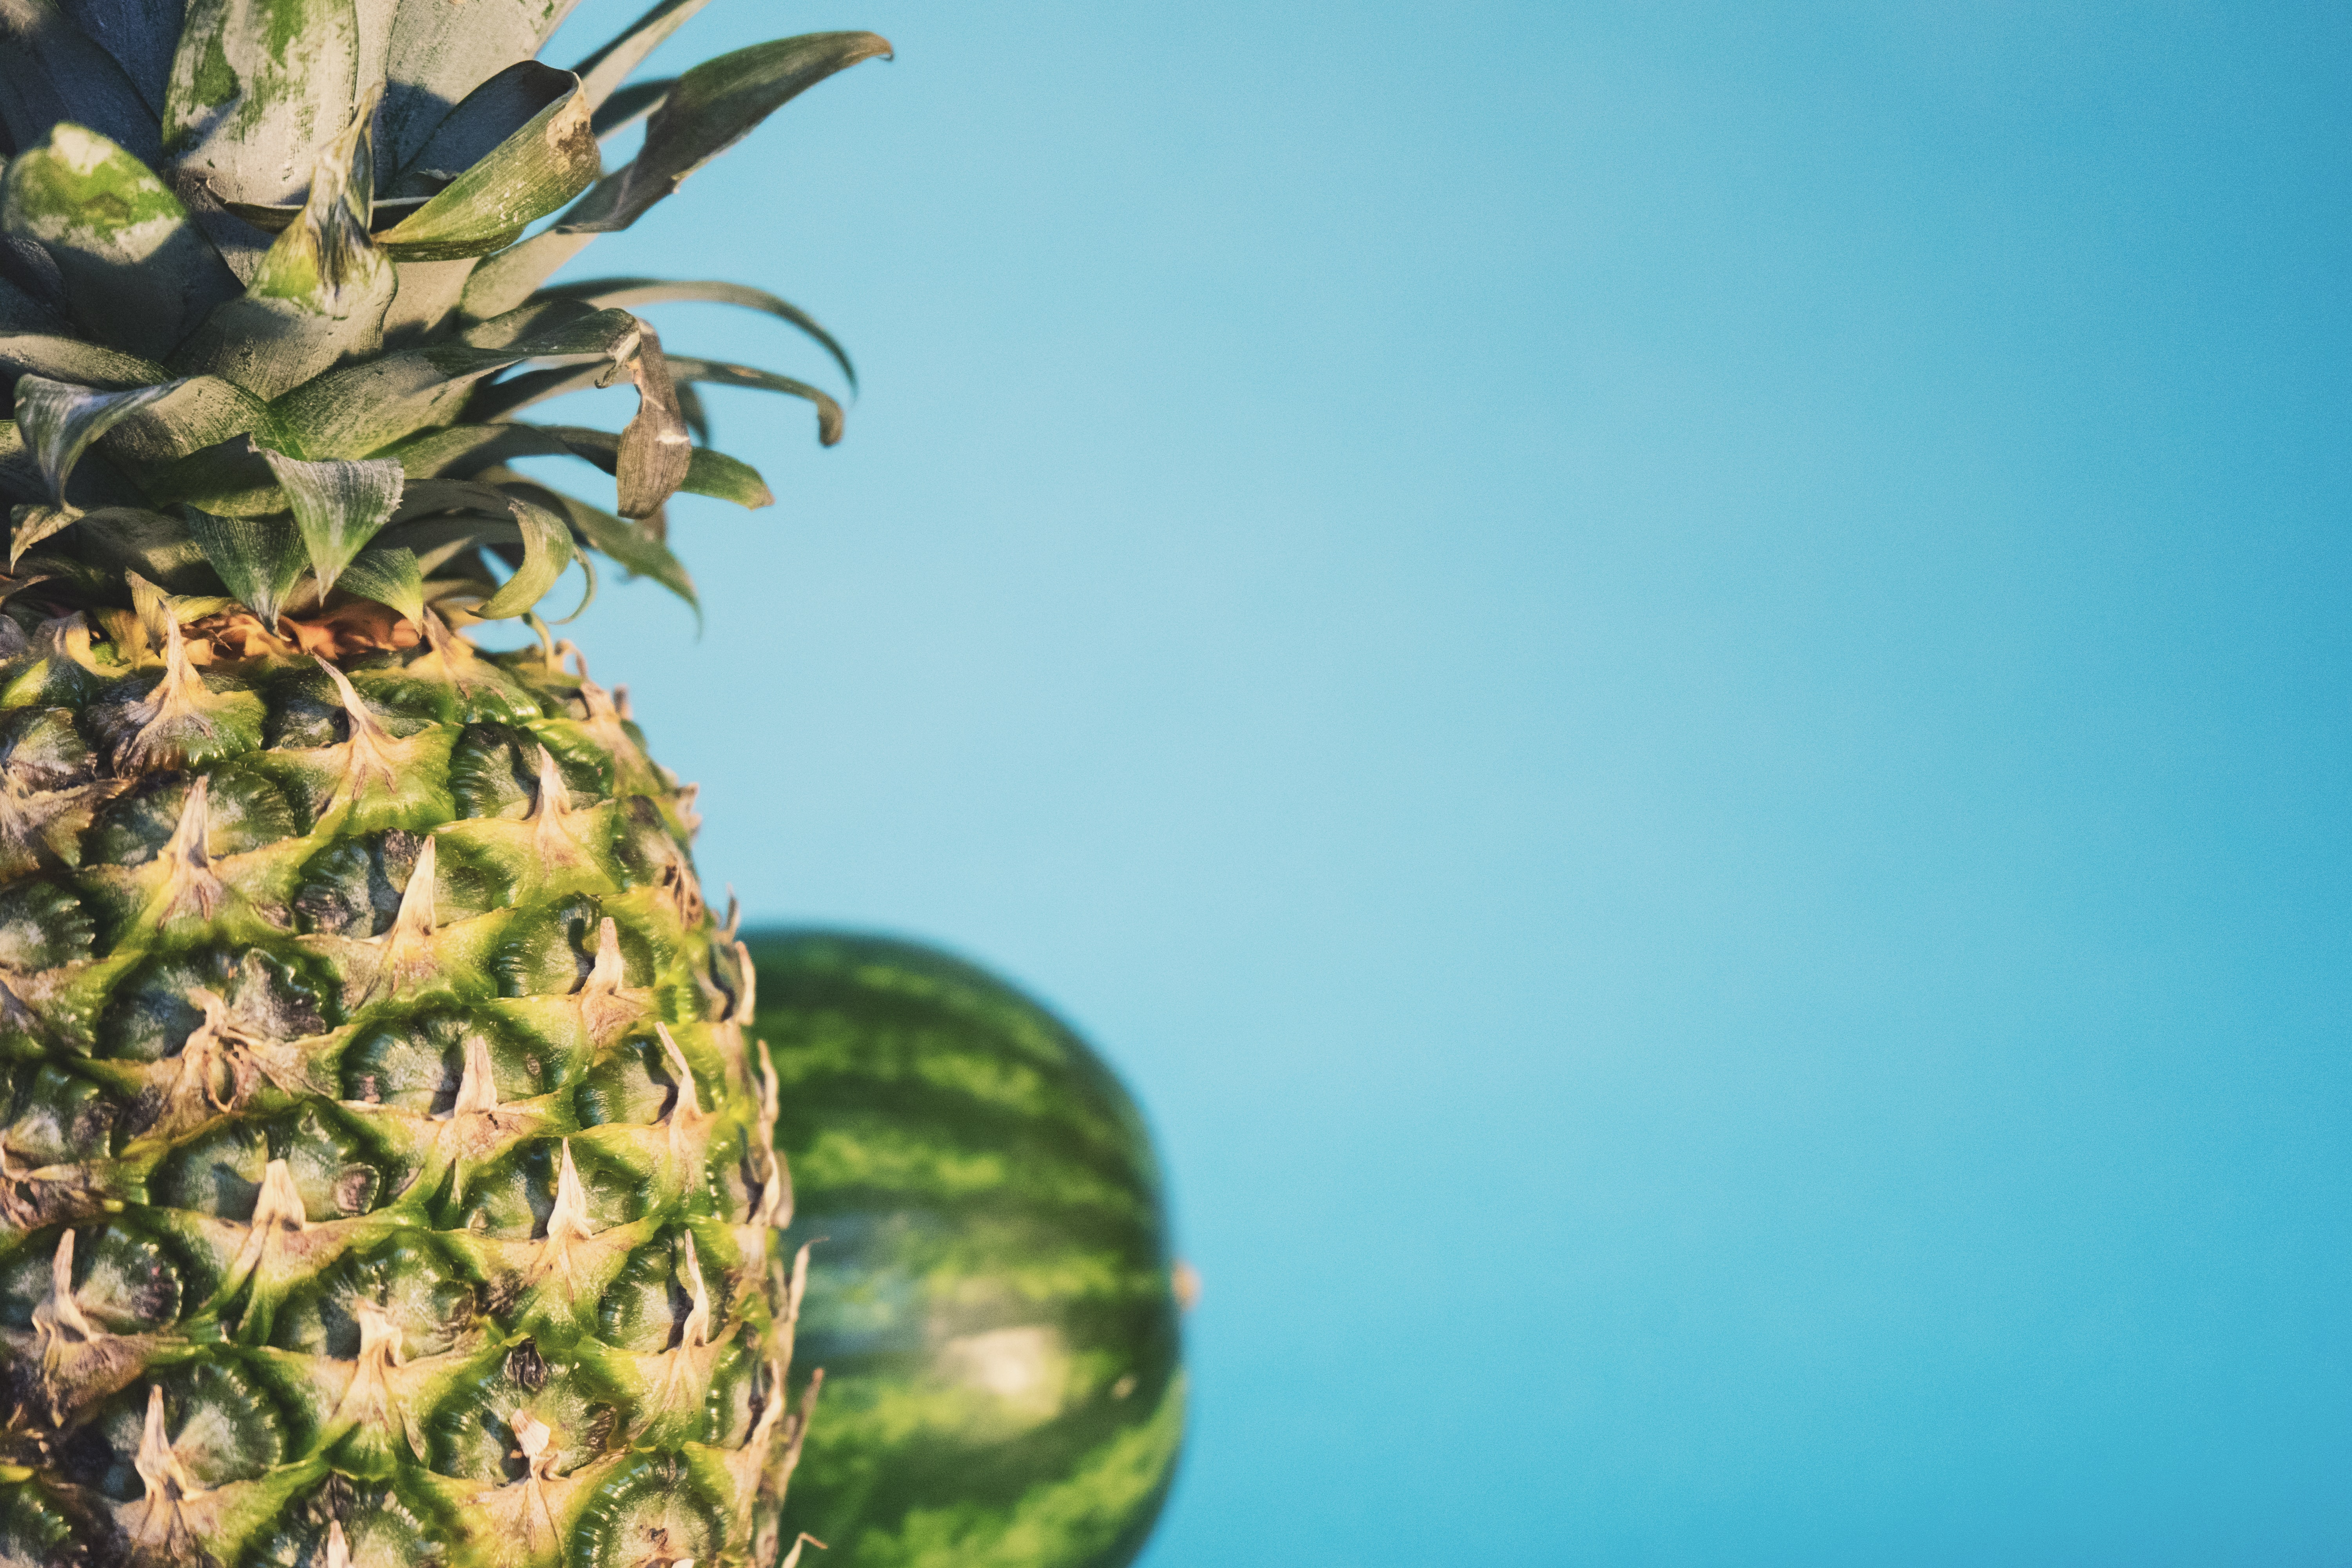 Pineapple and watermelon against a turquoise blue background